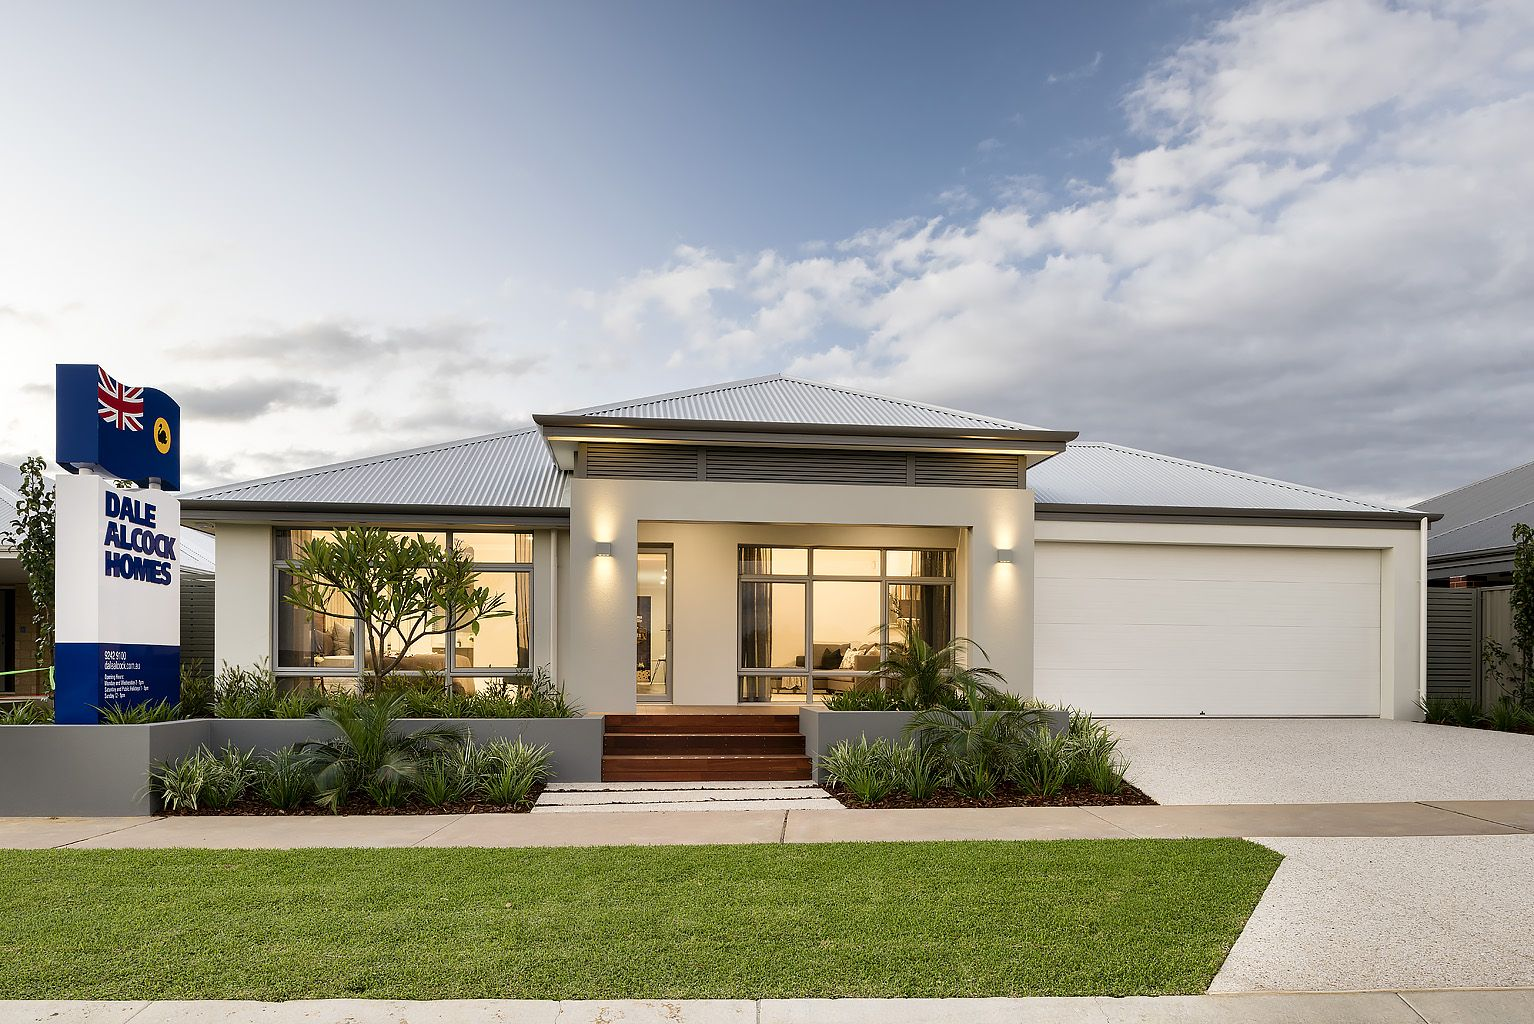 Pin Dale Alcock Display Homes - Archipelago In